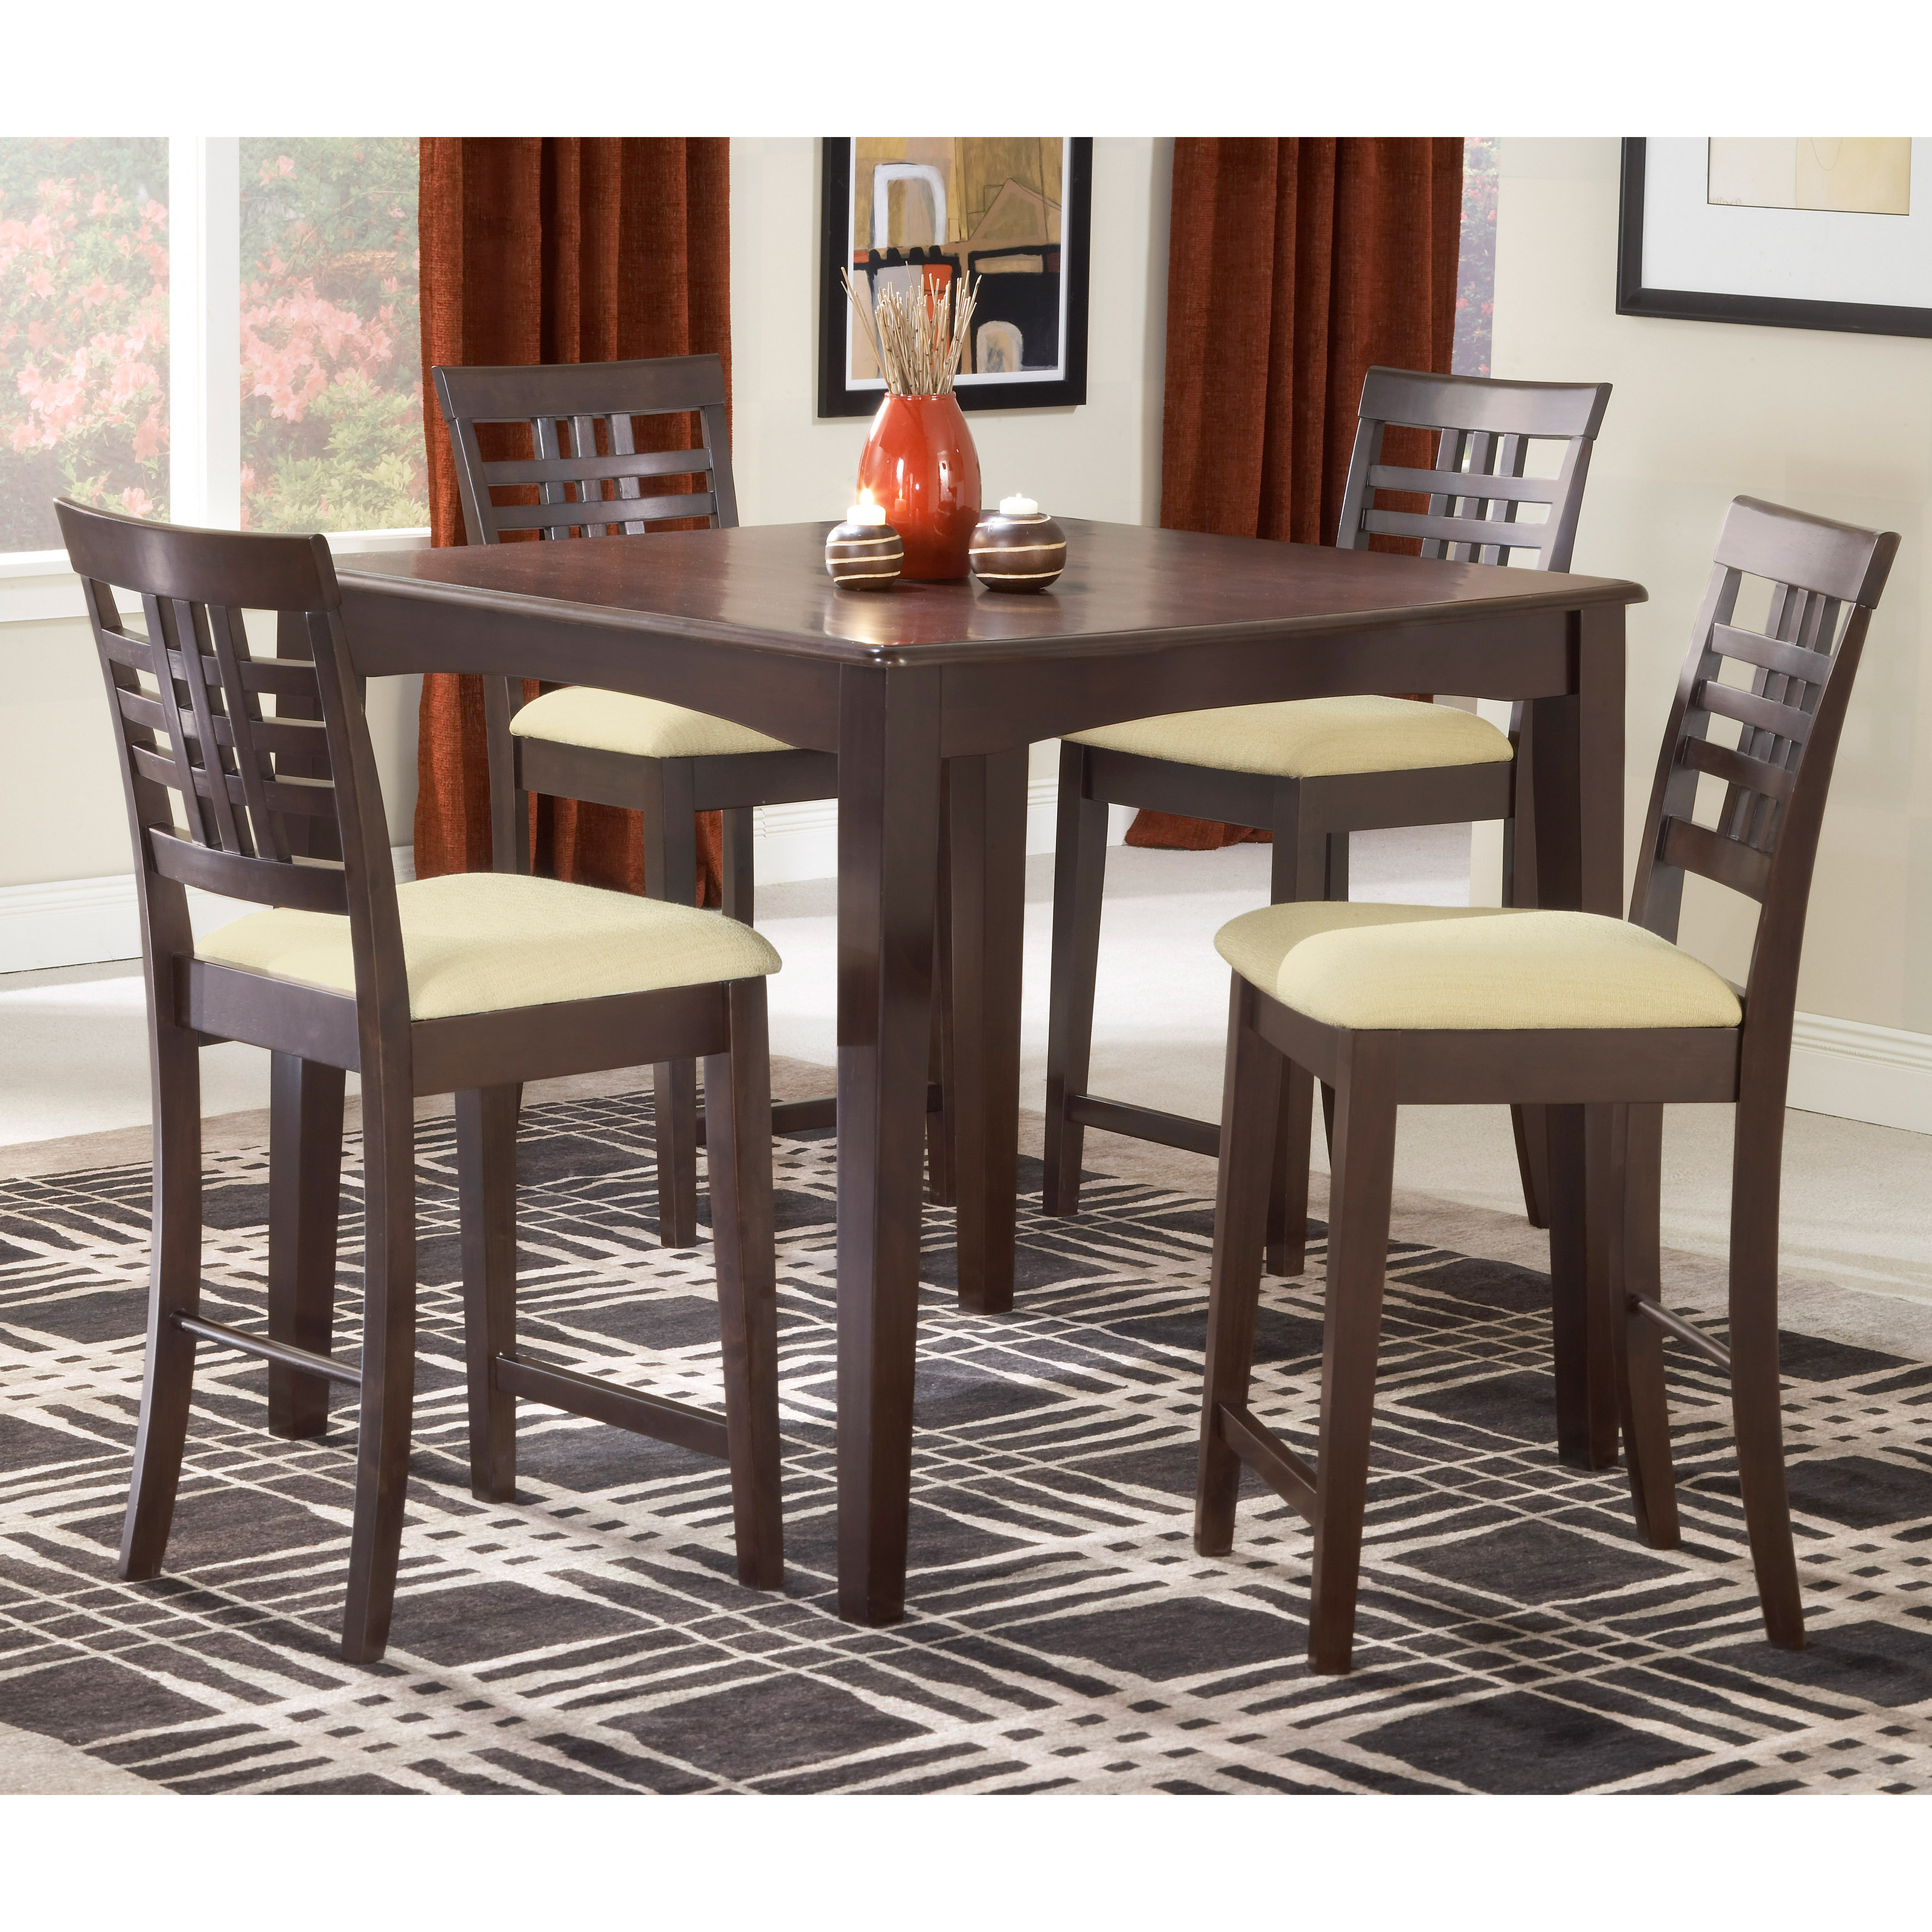 Powell Brigham 5 Piece Counter Height Dining Table Set